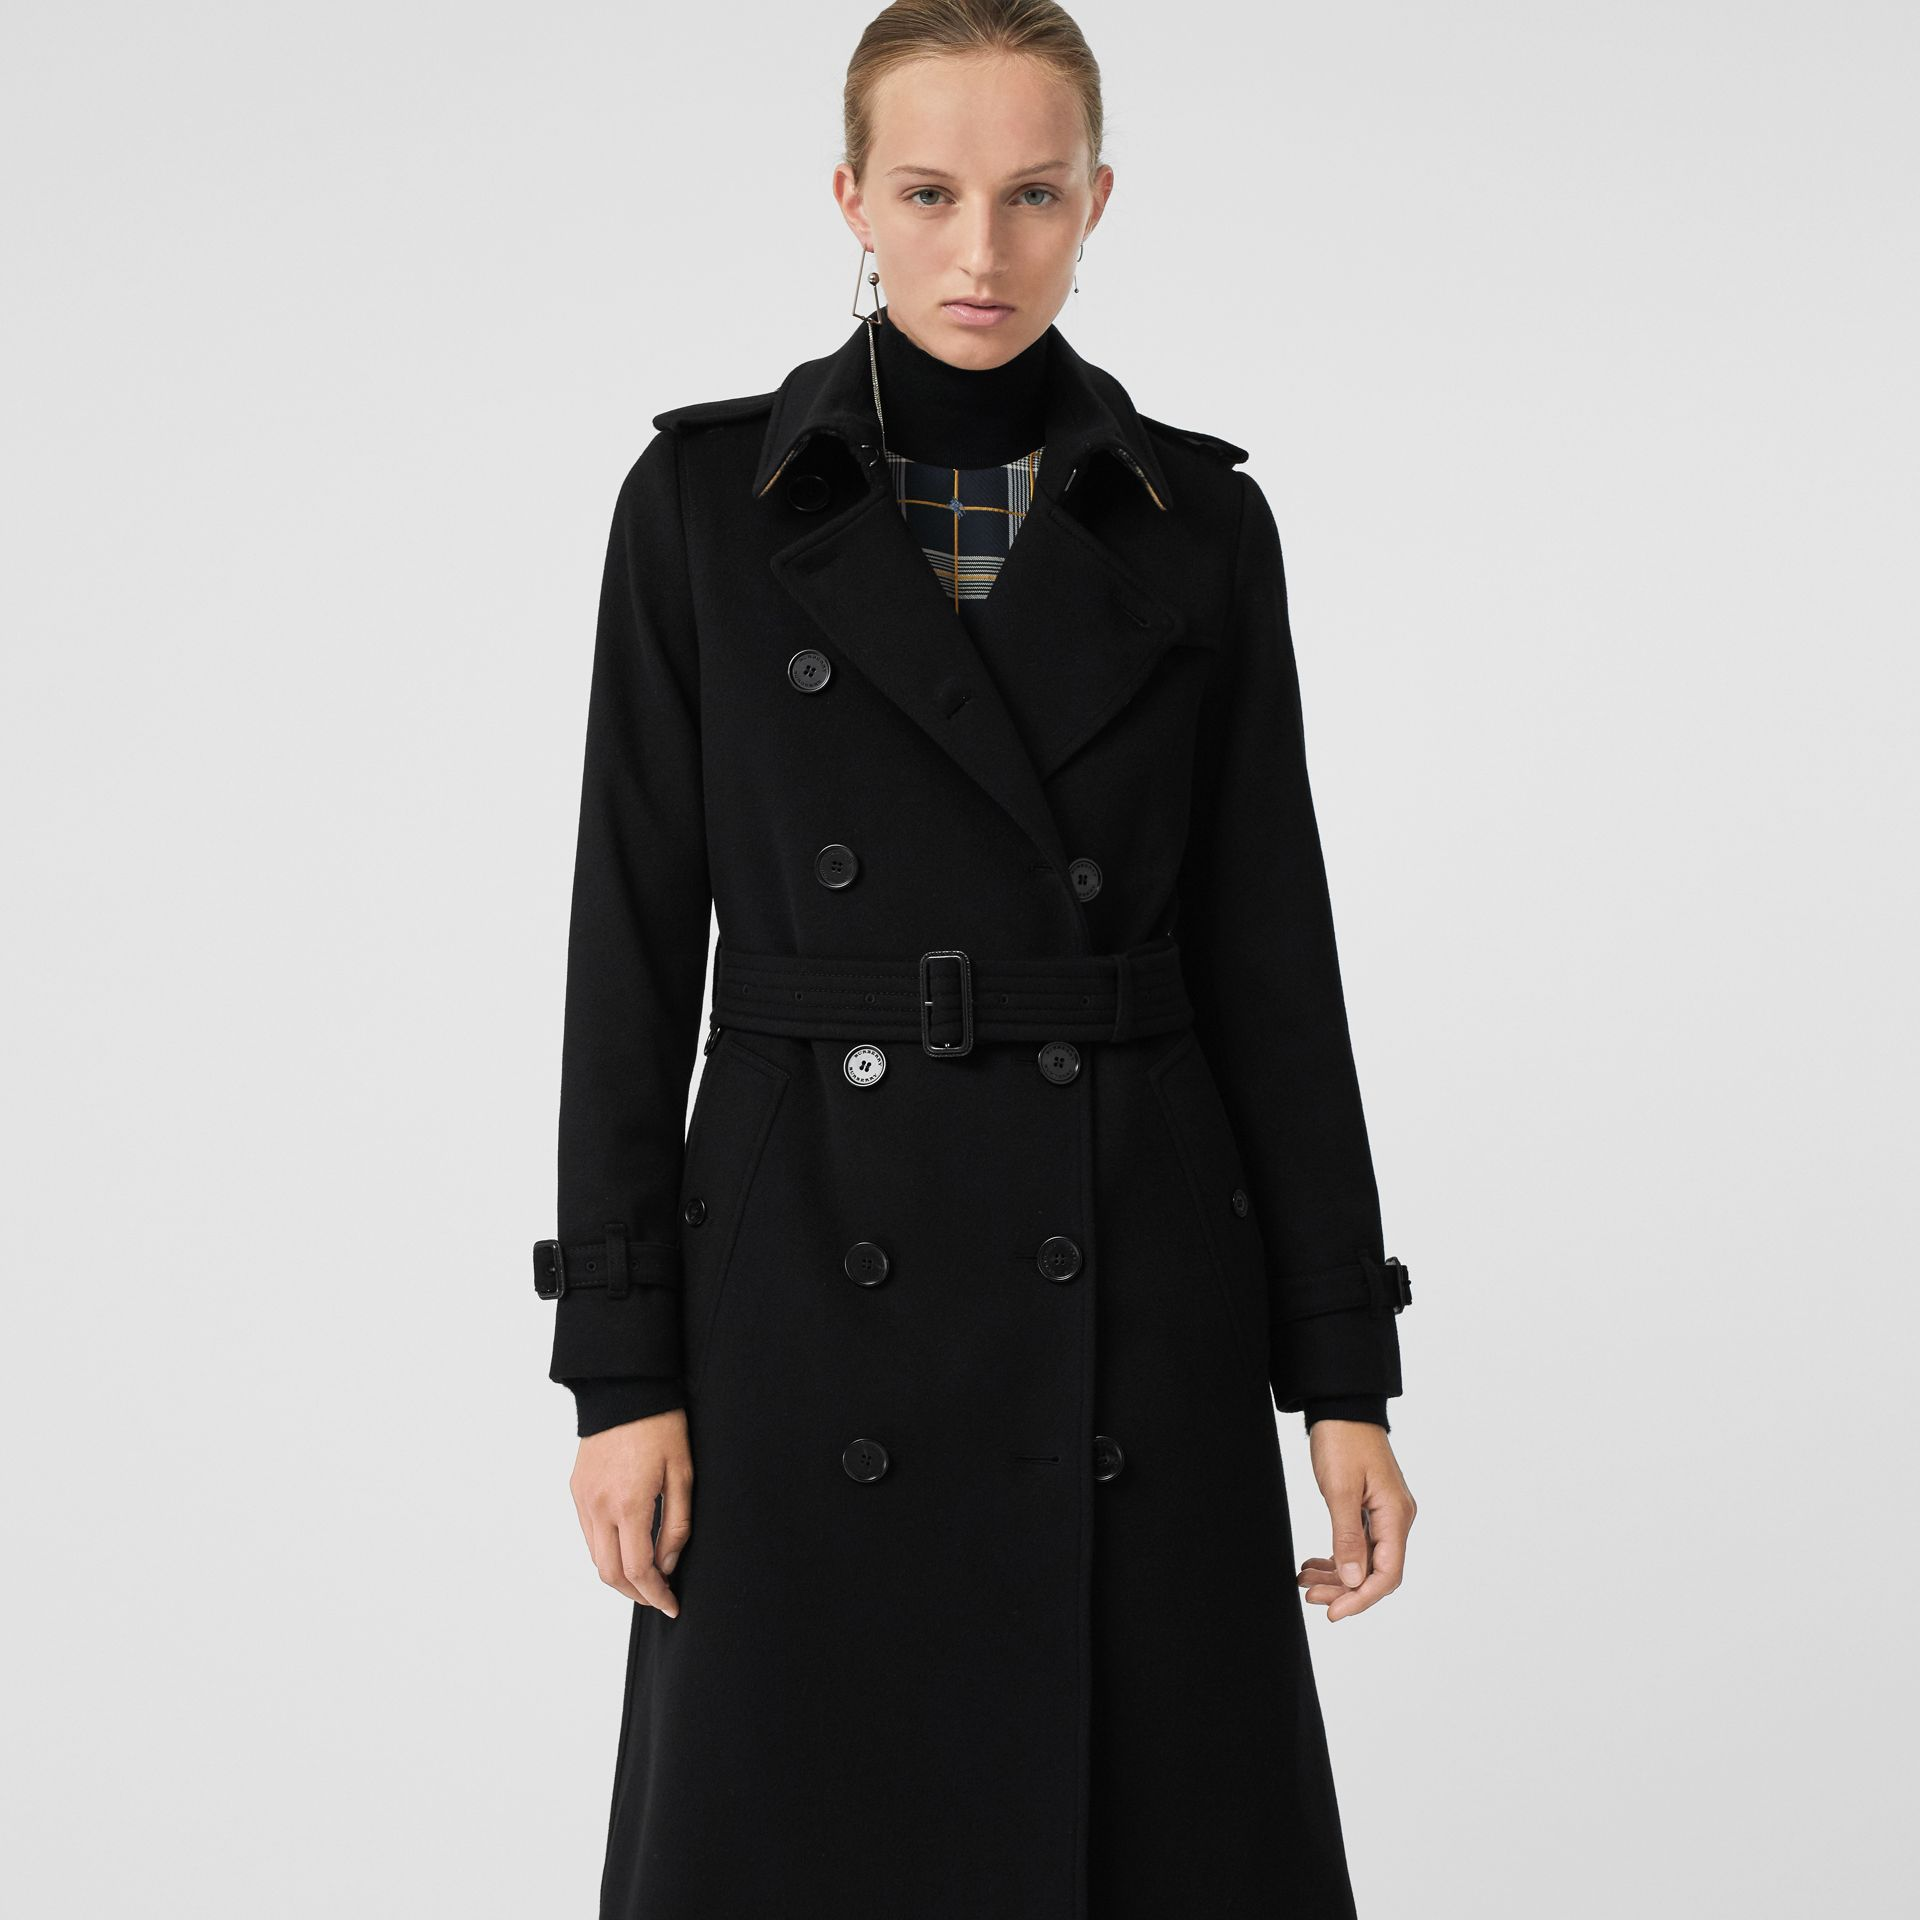 Cashmere Trench Coat in Black - Women | Burberry Canada - gallery image 6